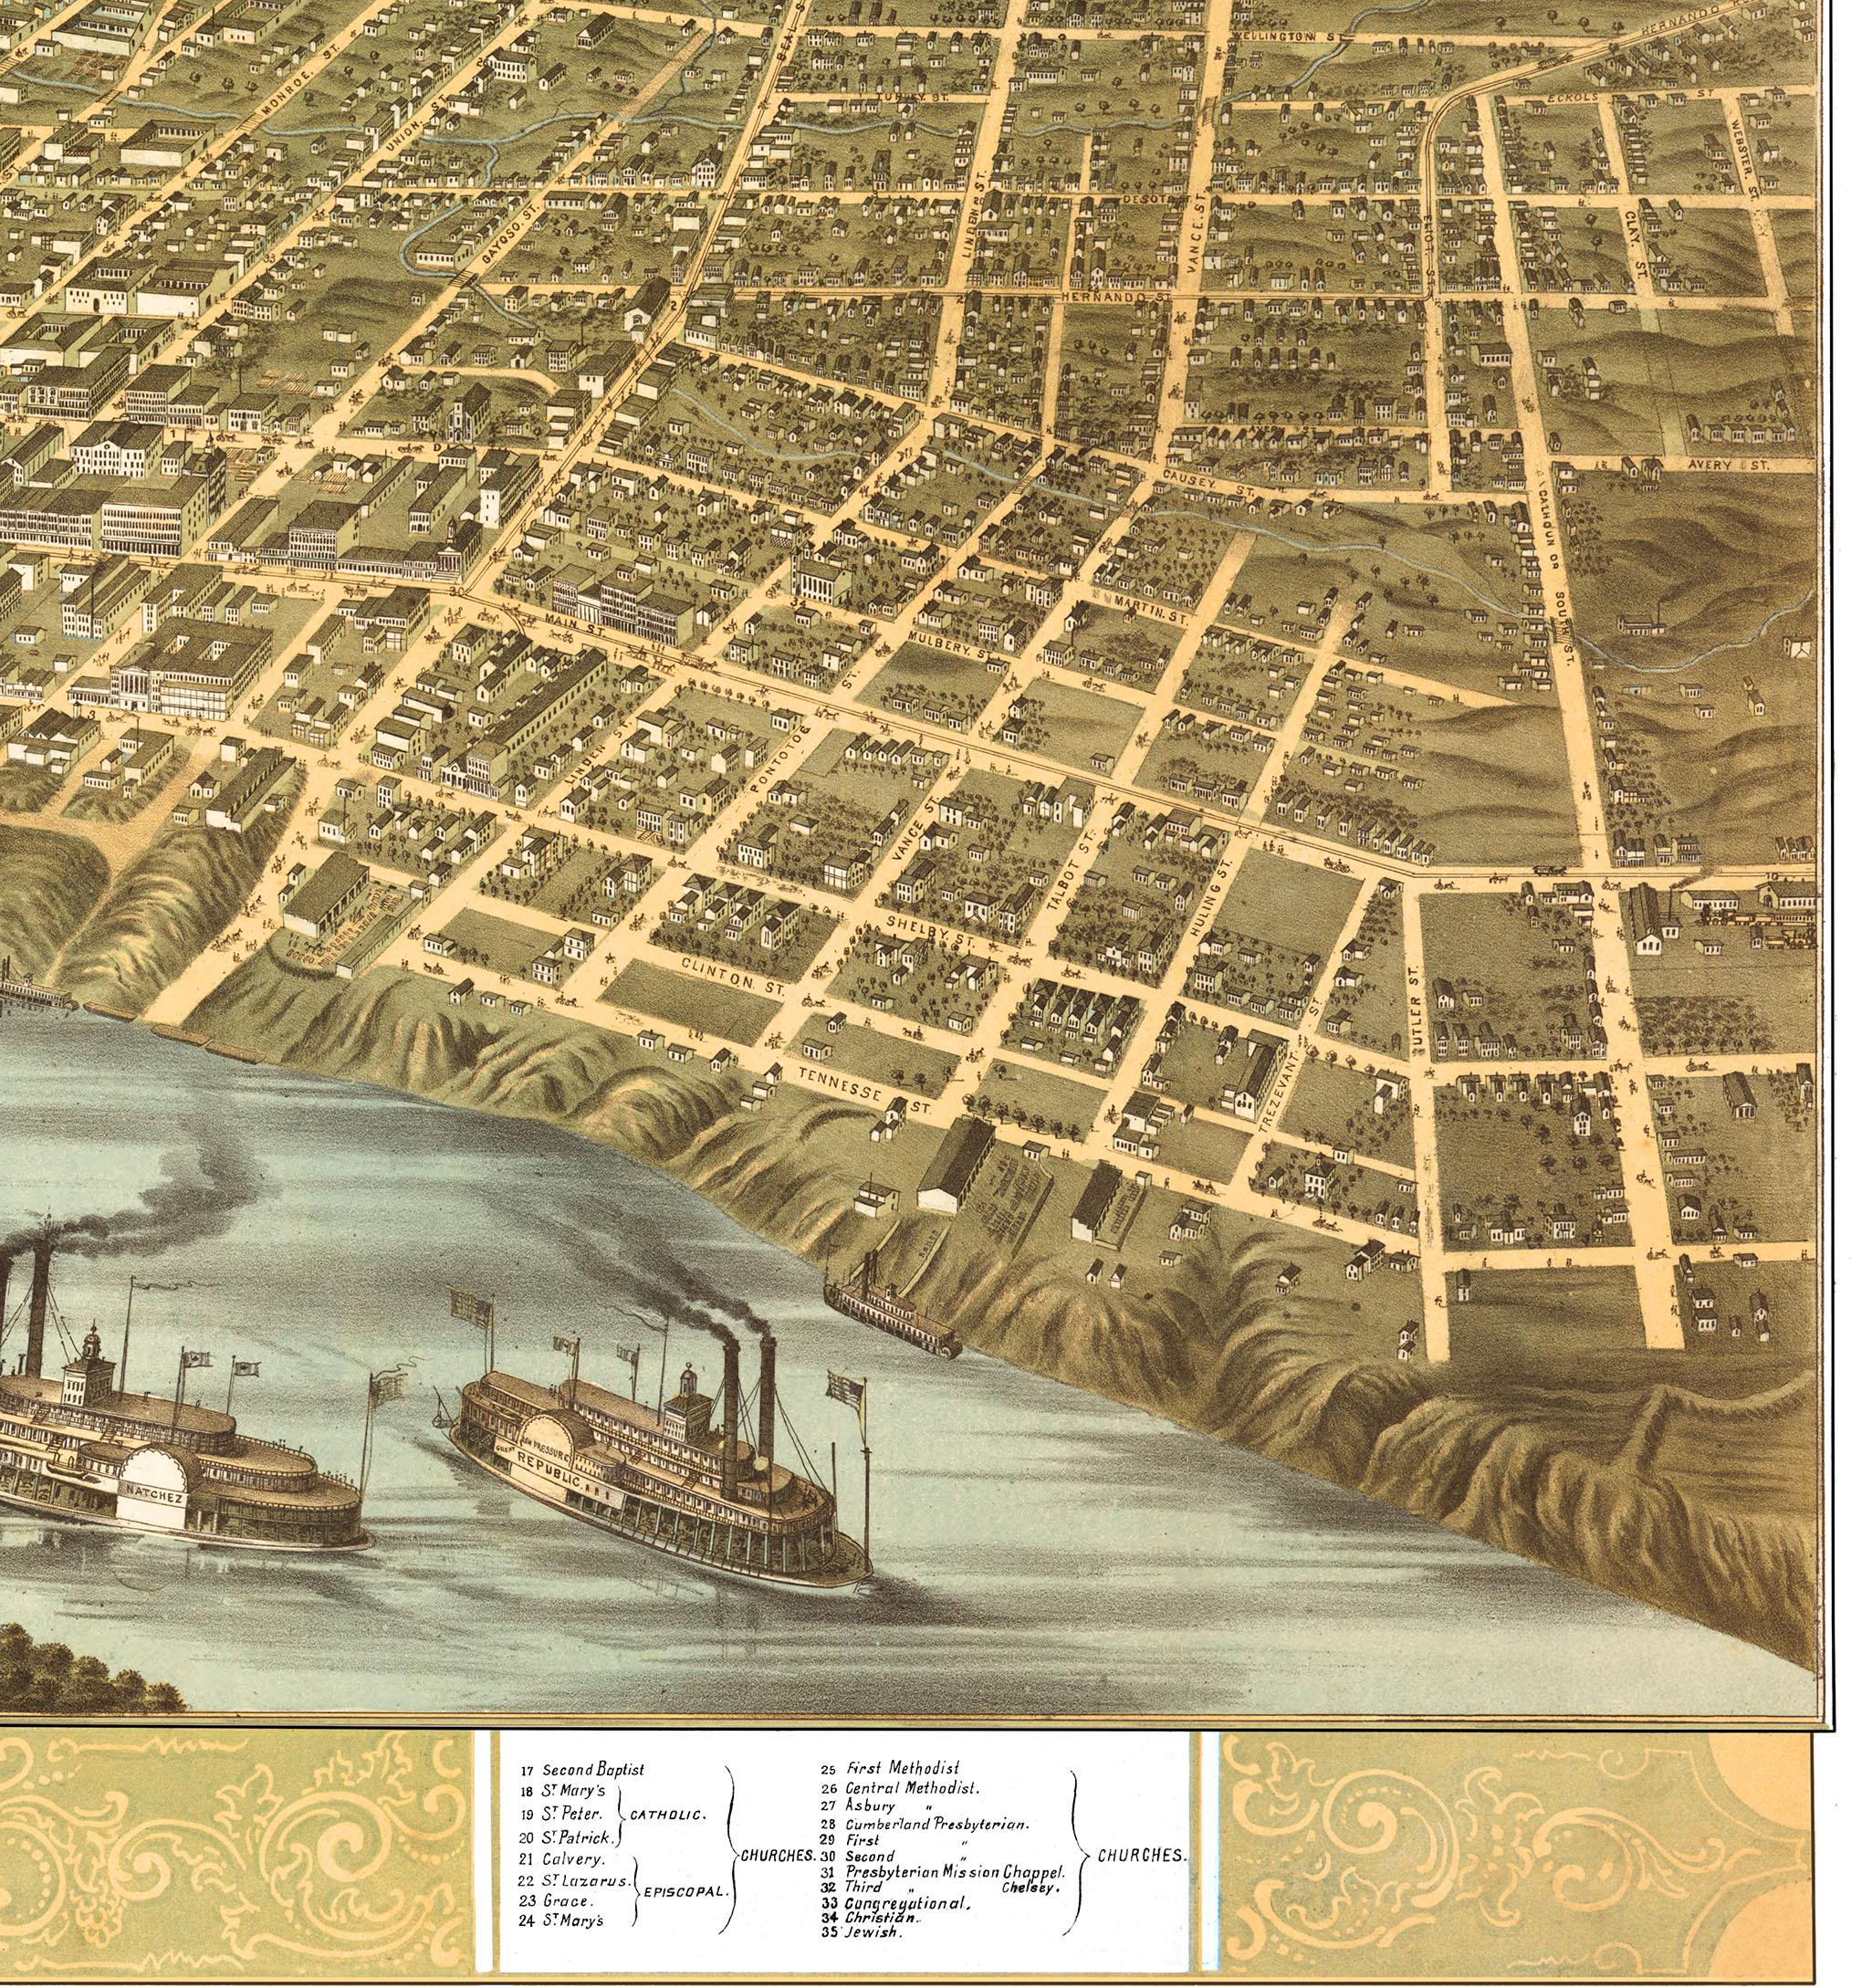 Memphis  Tennessee in 1870   Bird s Eye View  Map  Aerial  Panorama         Memphis  Tennessee in 1870   Bird s Eye View  Map  Aerial  Panorama